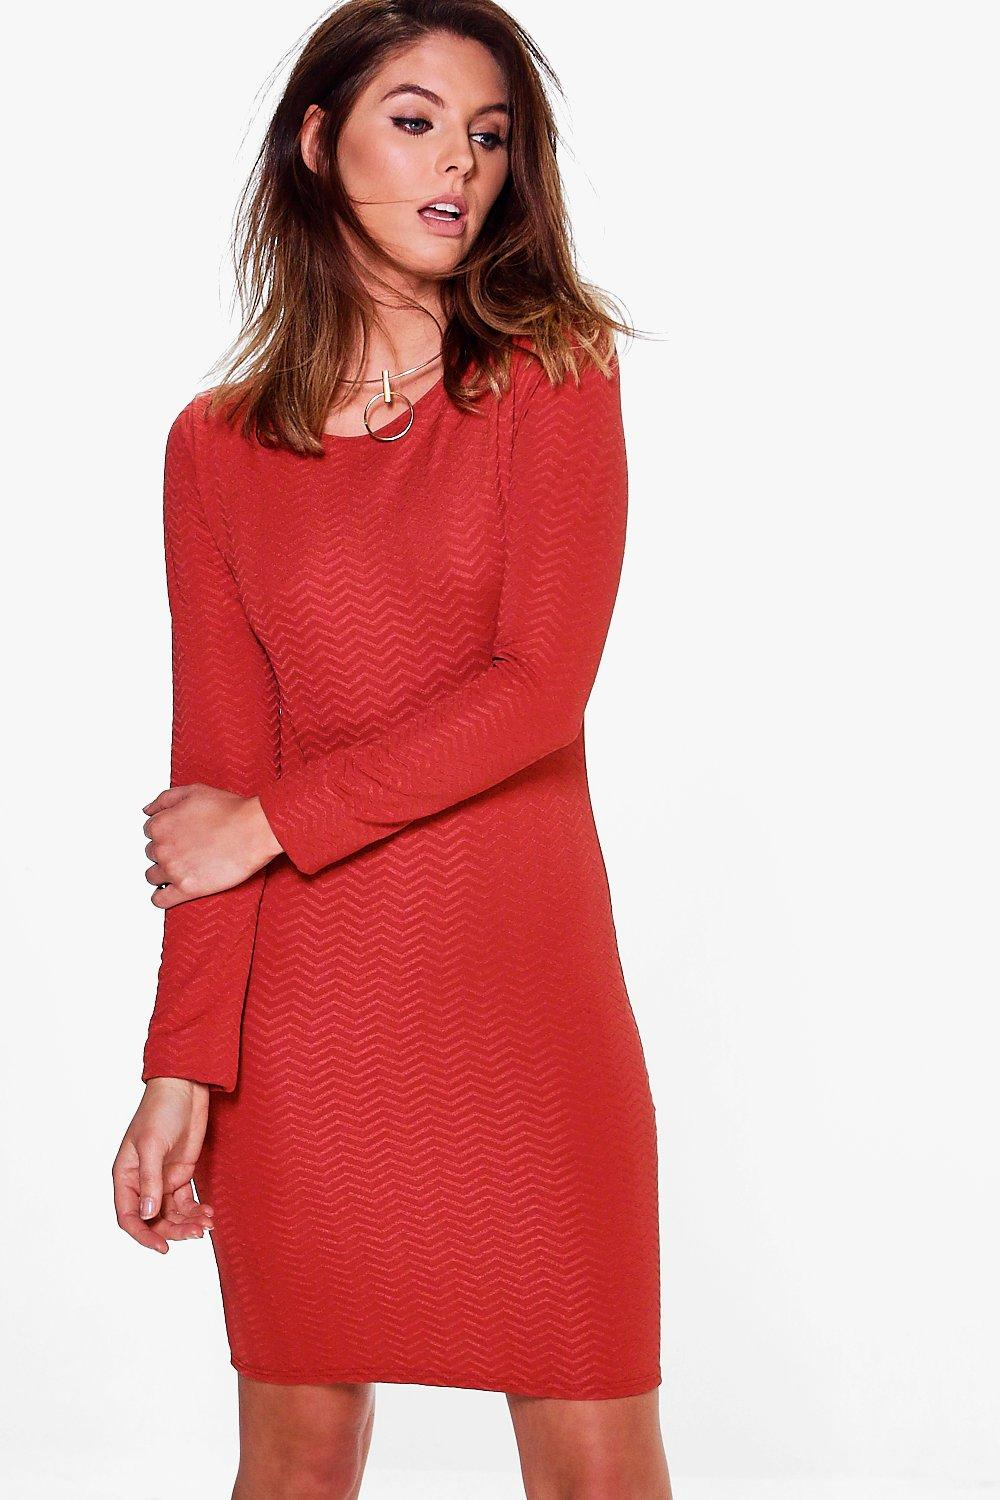 Aiyana Long Sleeve Bodycon Dress